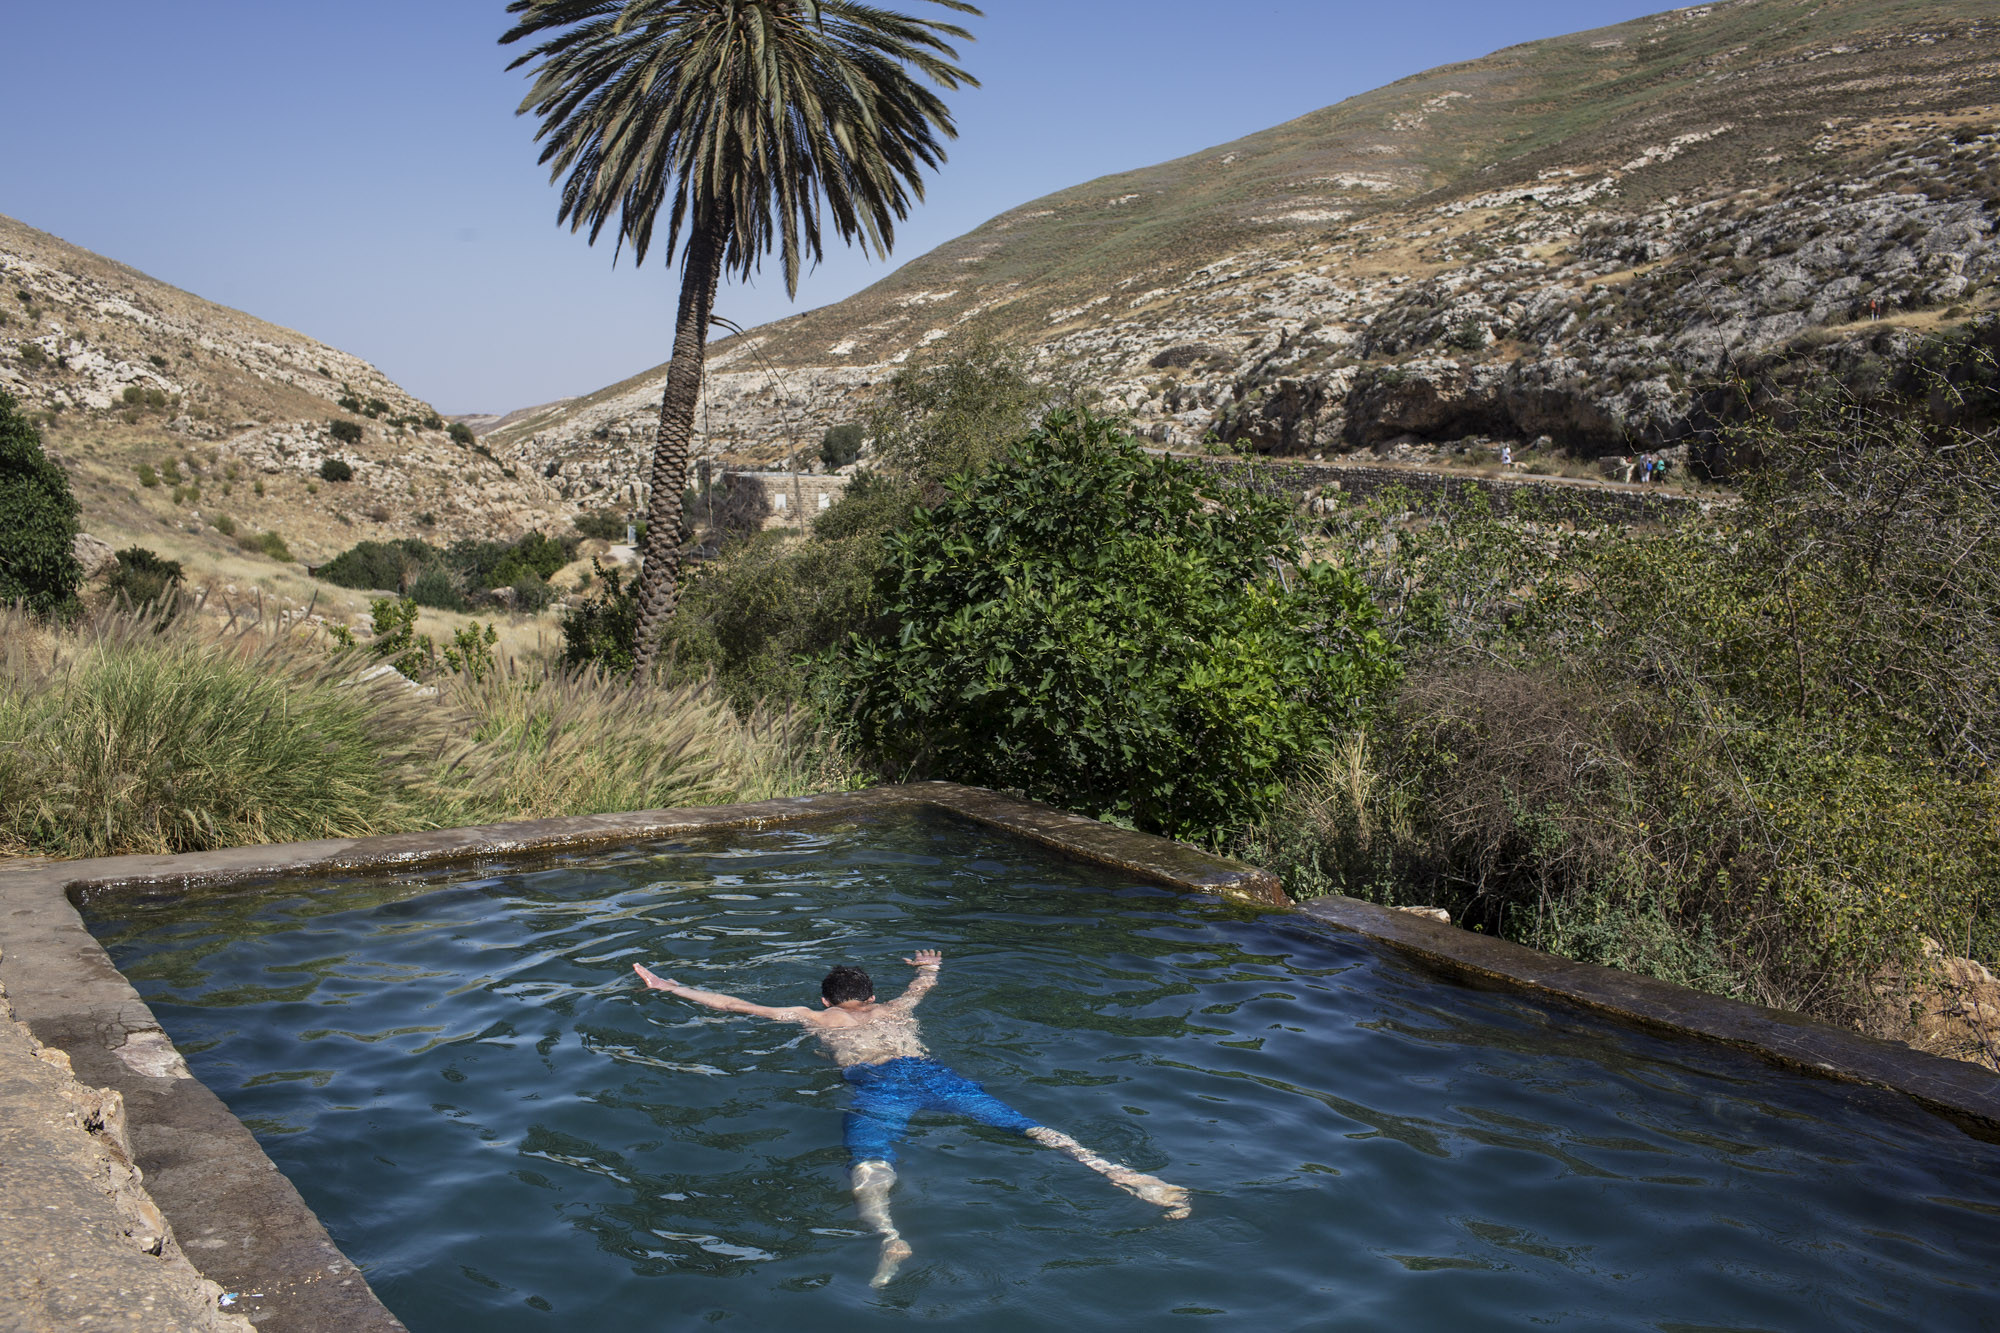 Occupied Palestinian Territories, West Bank, Ein Farah, April 2013, A Palestinian youth from Hebron enjoys a swim in Ein Farha, considered to be one of the most beautiful nature spots in the entire West Bank. It, like many other nature reserves and heritage sites, is occupied by the Israeli Nature and Parks Authority. Palestinian tourist enterprises are not allowed.